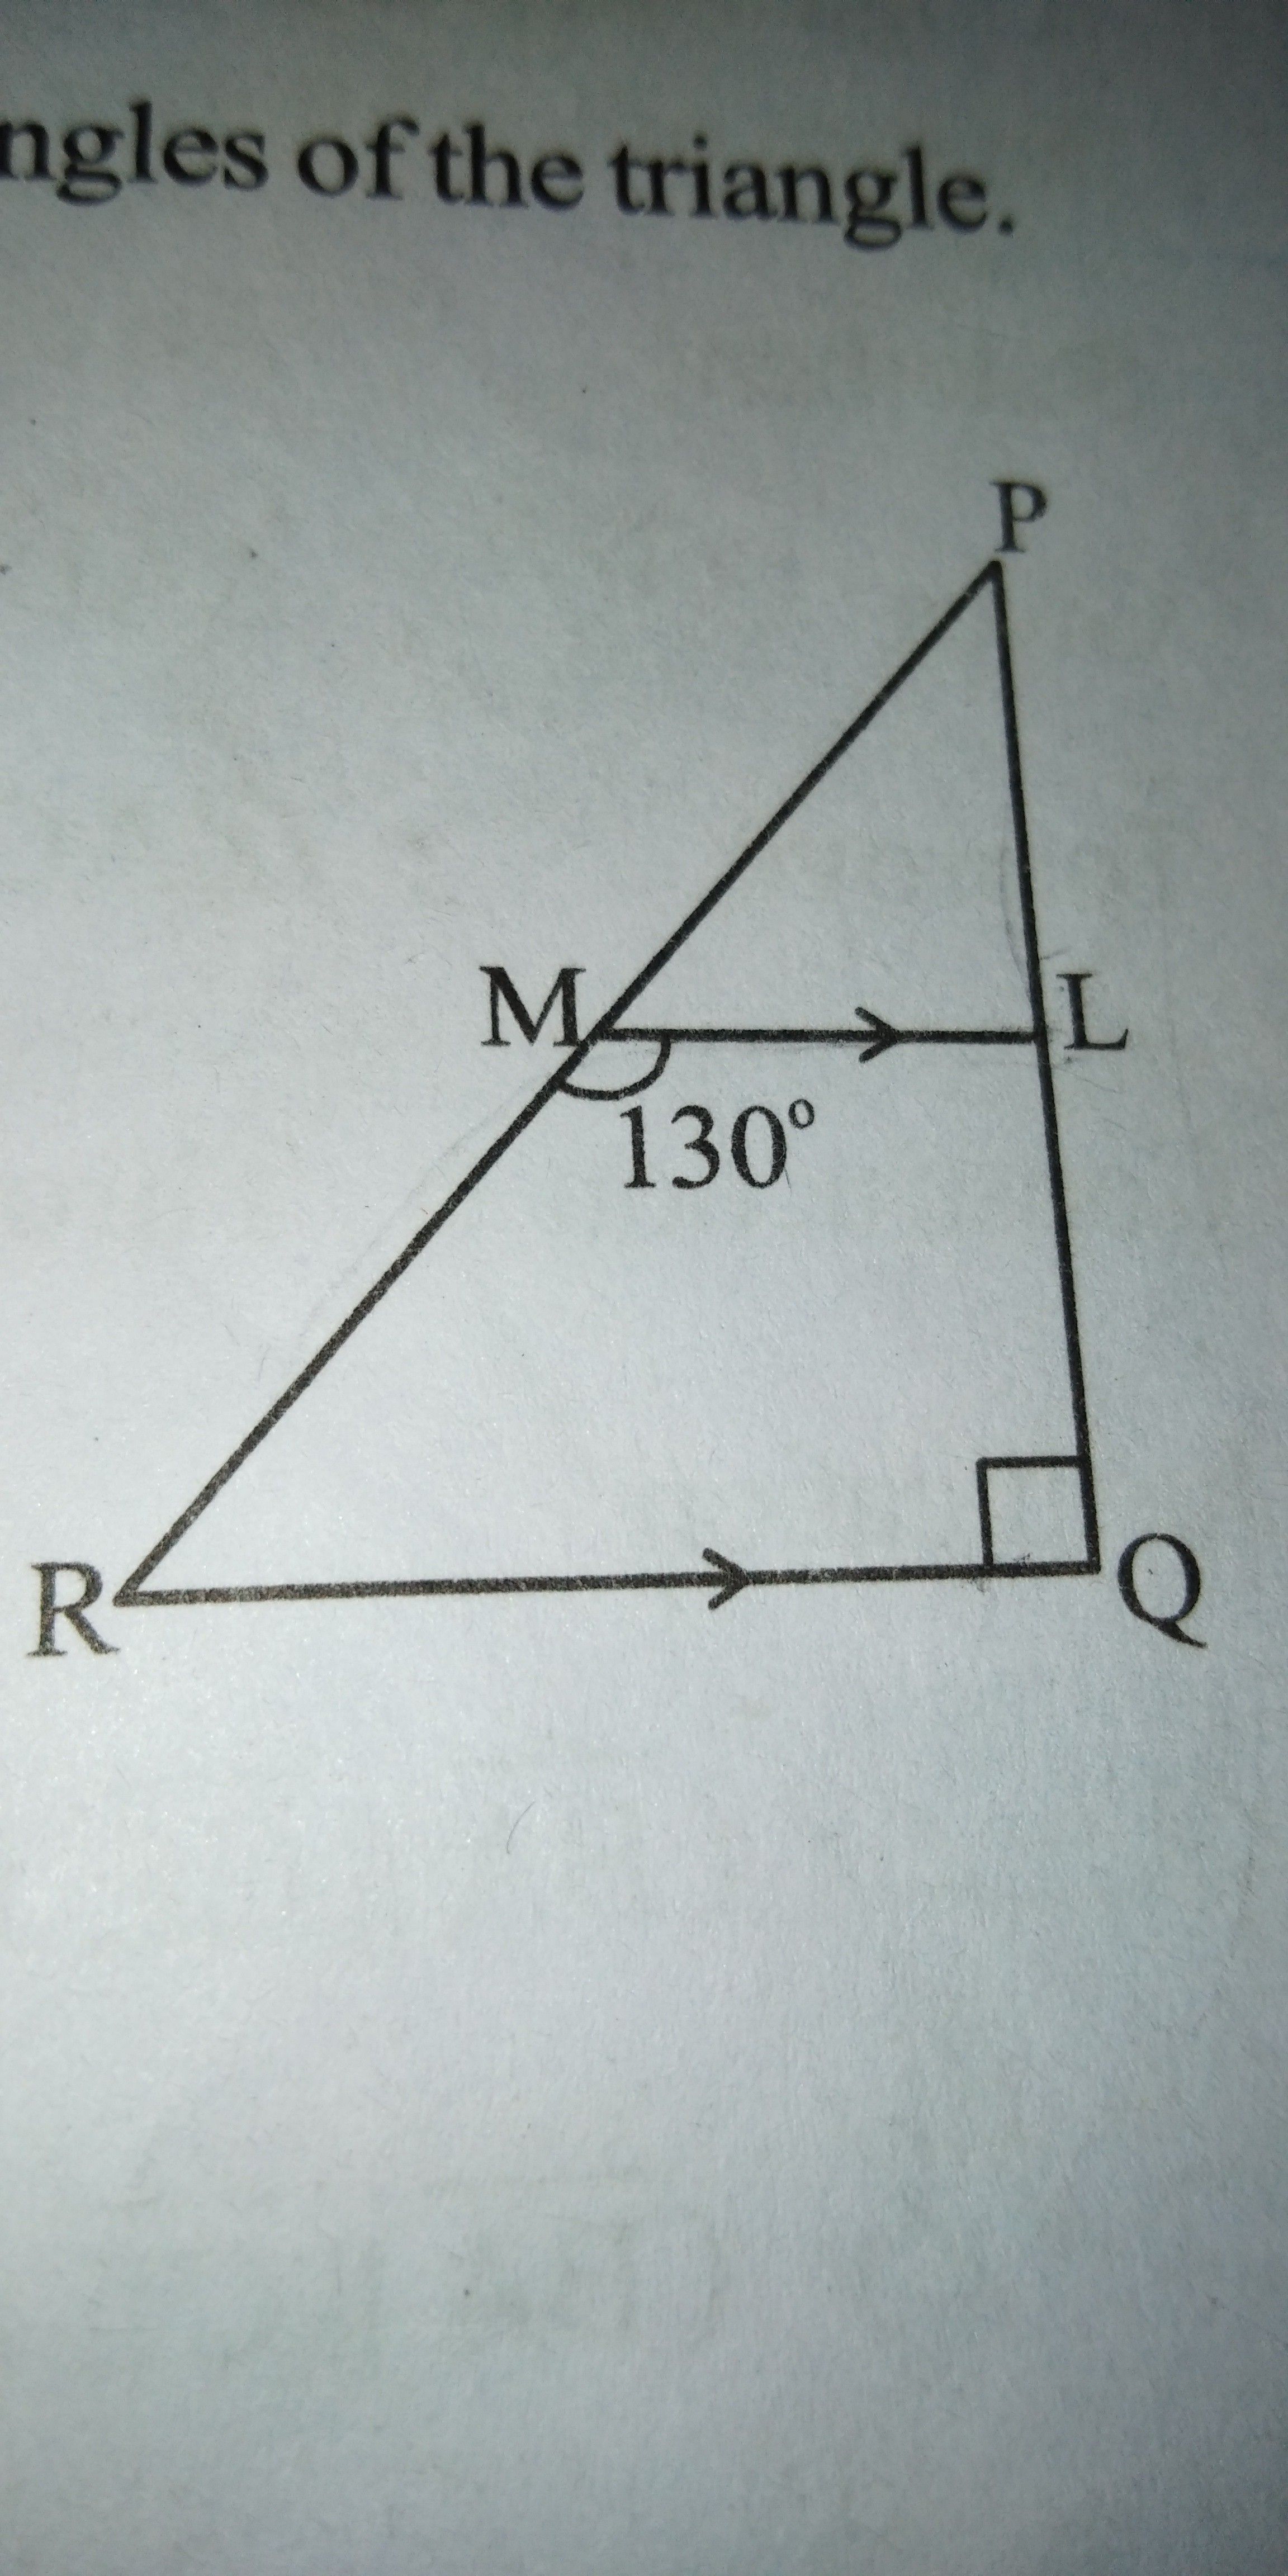 in the figure triangle PQR is a right angled at Q, ML is parallel to